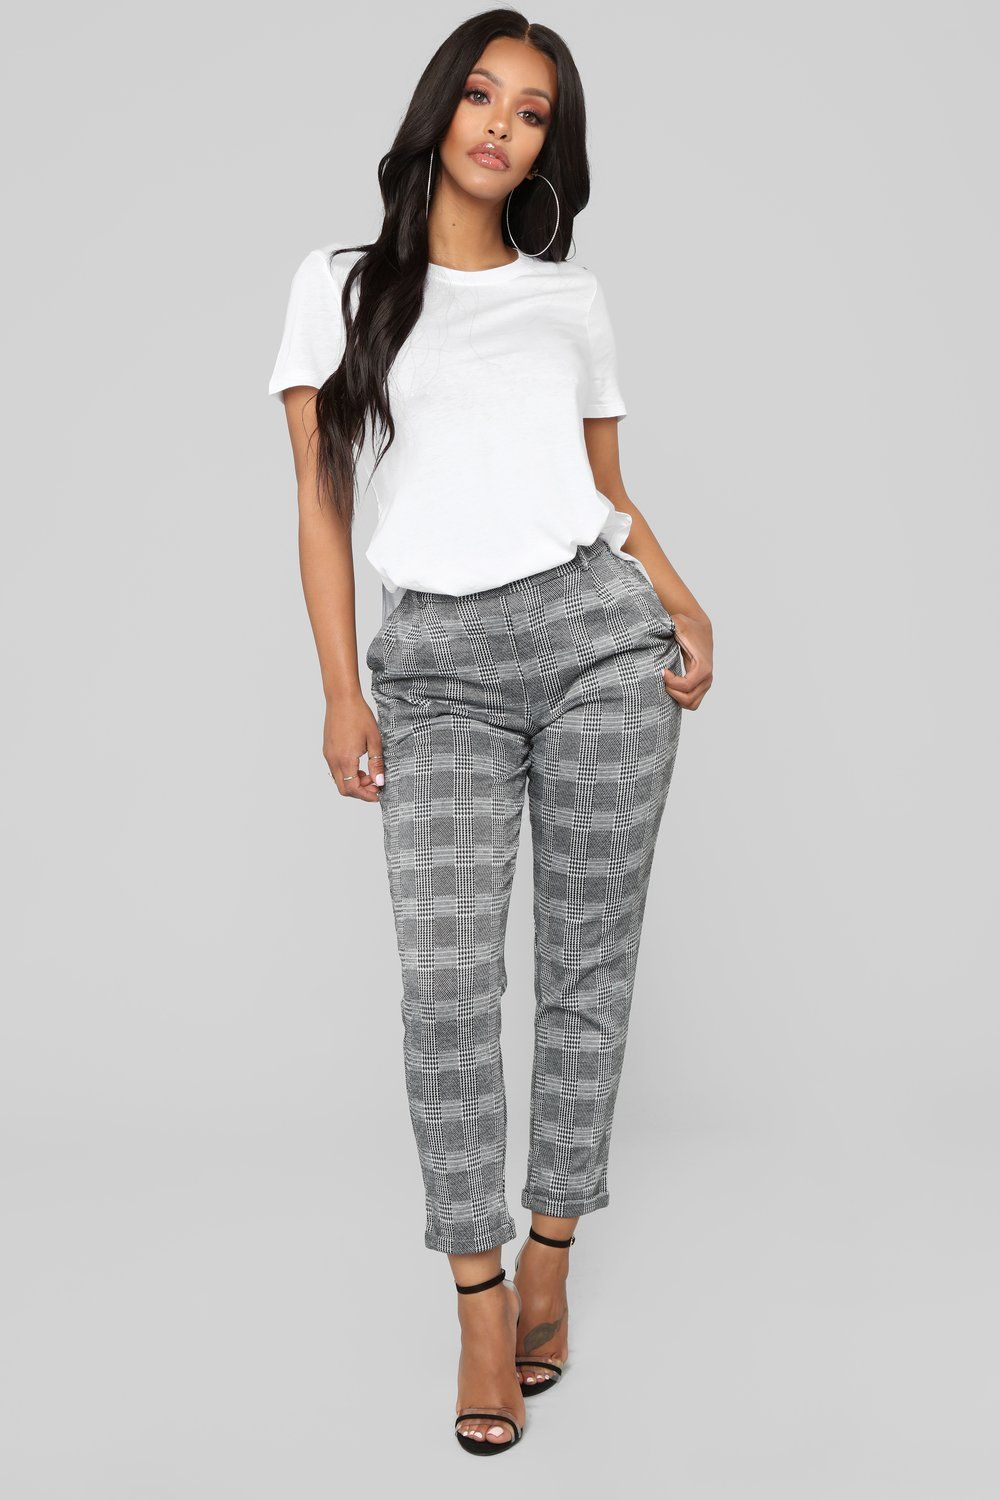 Laid Back Tee White In 2021 Black And White Pants Pants Outfit Work Patterned Pants Outfit [ 1500 x 1000 Pixel ]